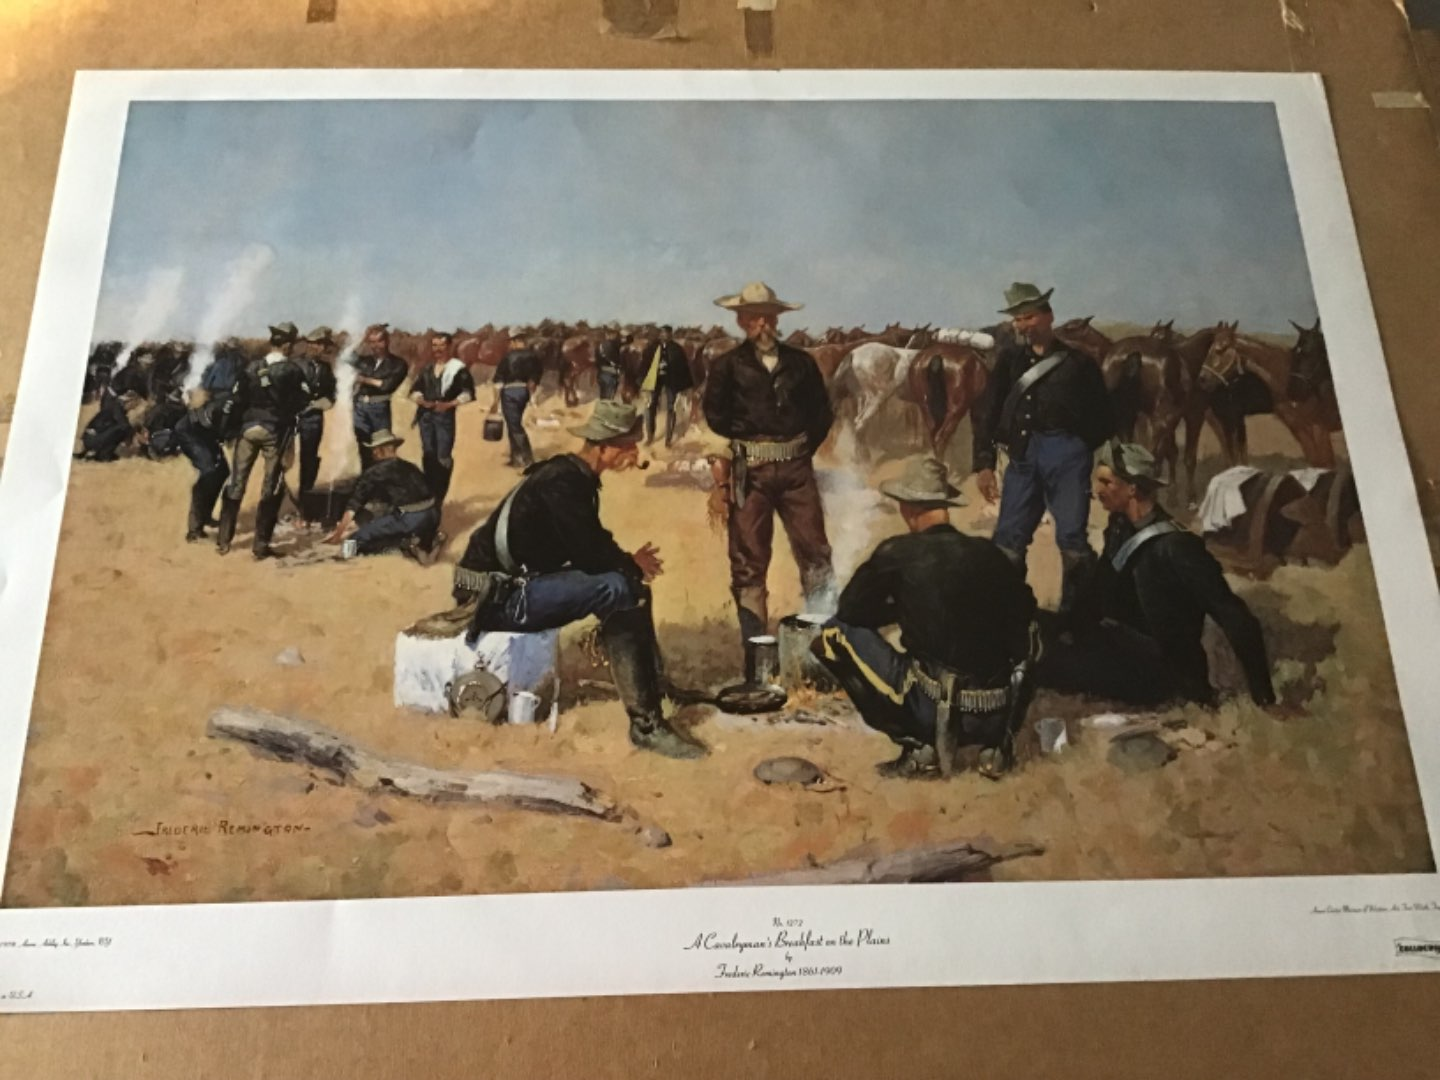 Lot # 140 FREDERIC REMINGTON Print - A Cavalryman's Breakfast on the Plains - See Descrp in Lot 137